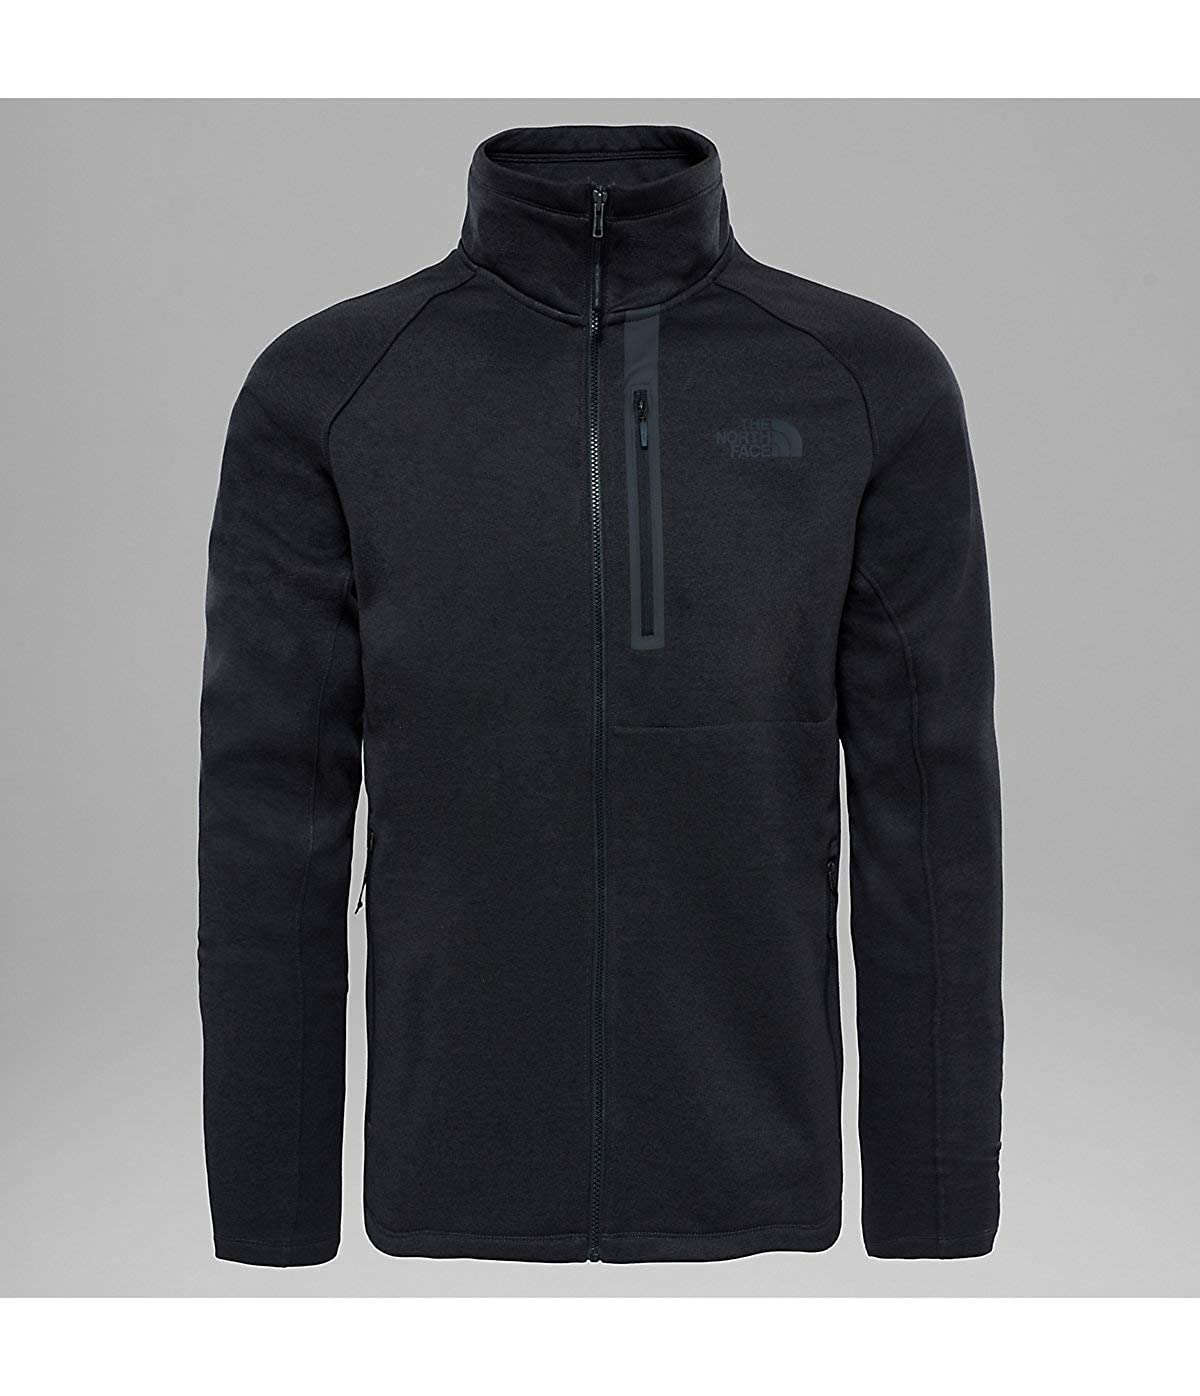 The North Face FZ Chaqueta con Cremallera Canyonlands, Hombre